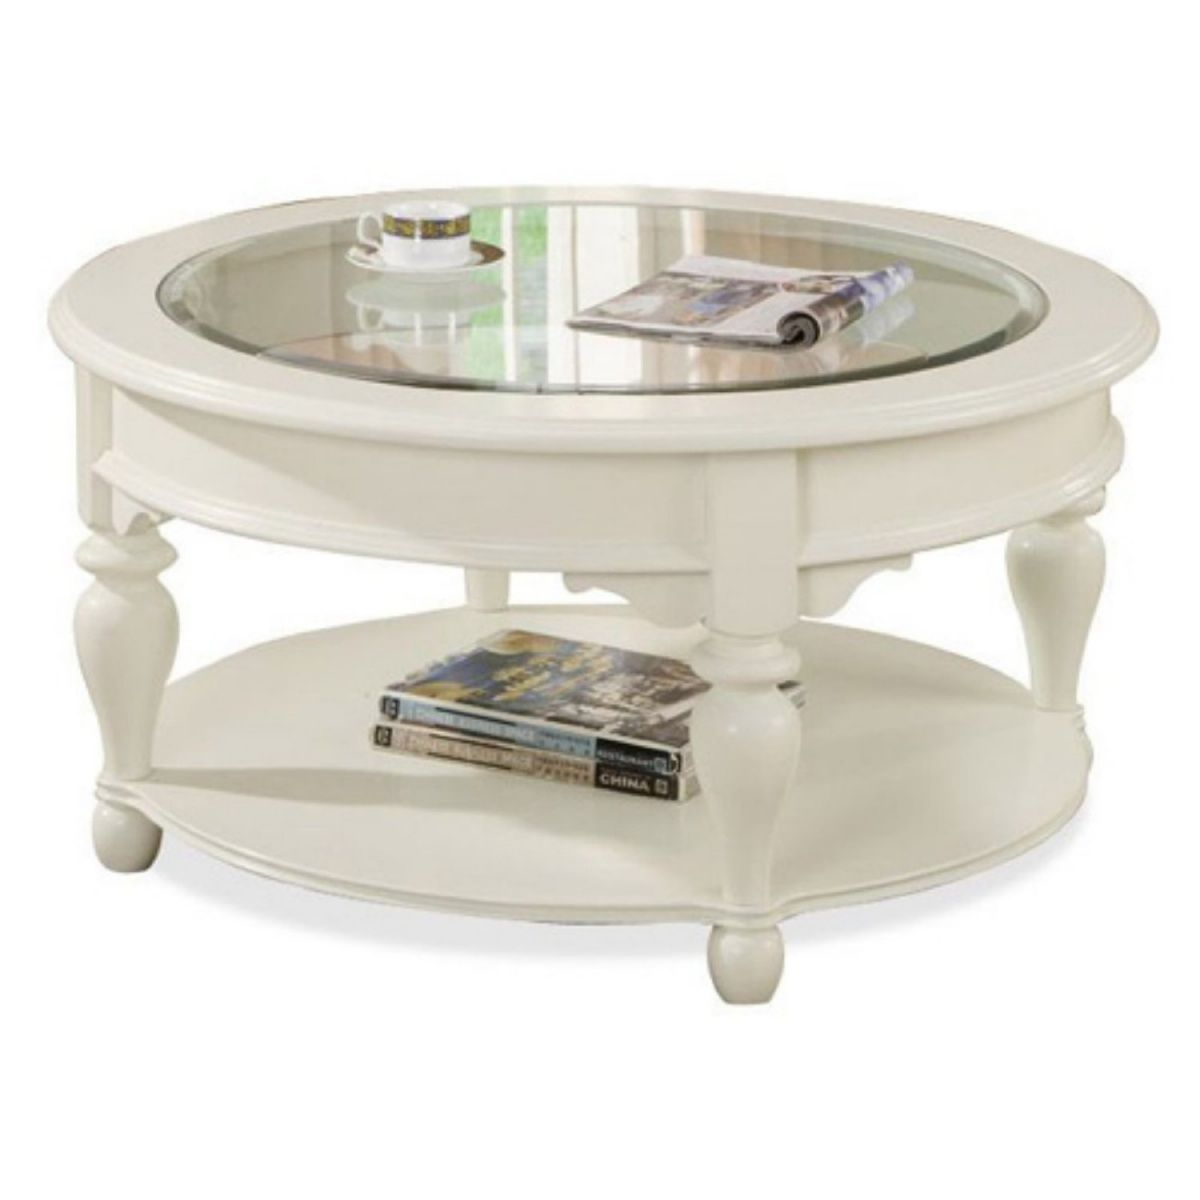 Shabby Chic Couchtisch White Circle Coffee Table...wish It Was Wood On Top | Weißer Runder Couchtisch, Couchtisch Weiss, Wohnzimmertische